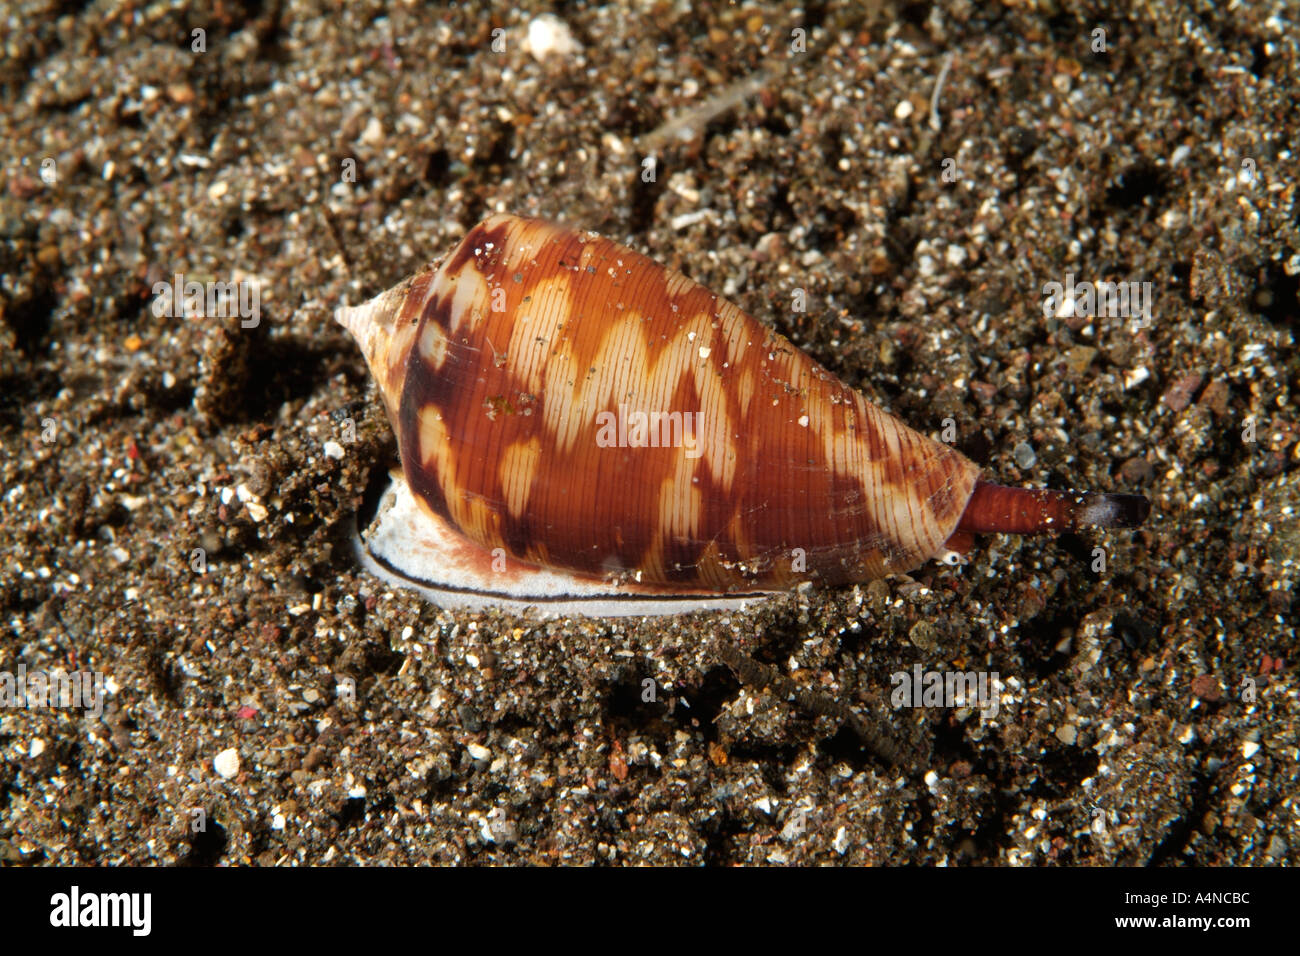 Cone Snail Stock Photos Amp Cone Snail Stock Images Alamy